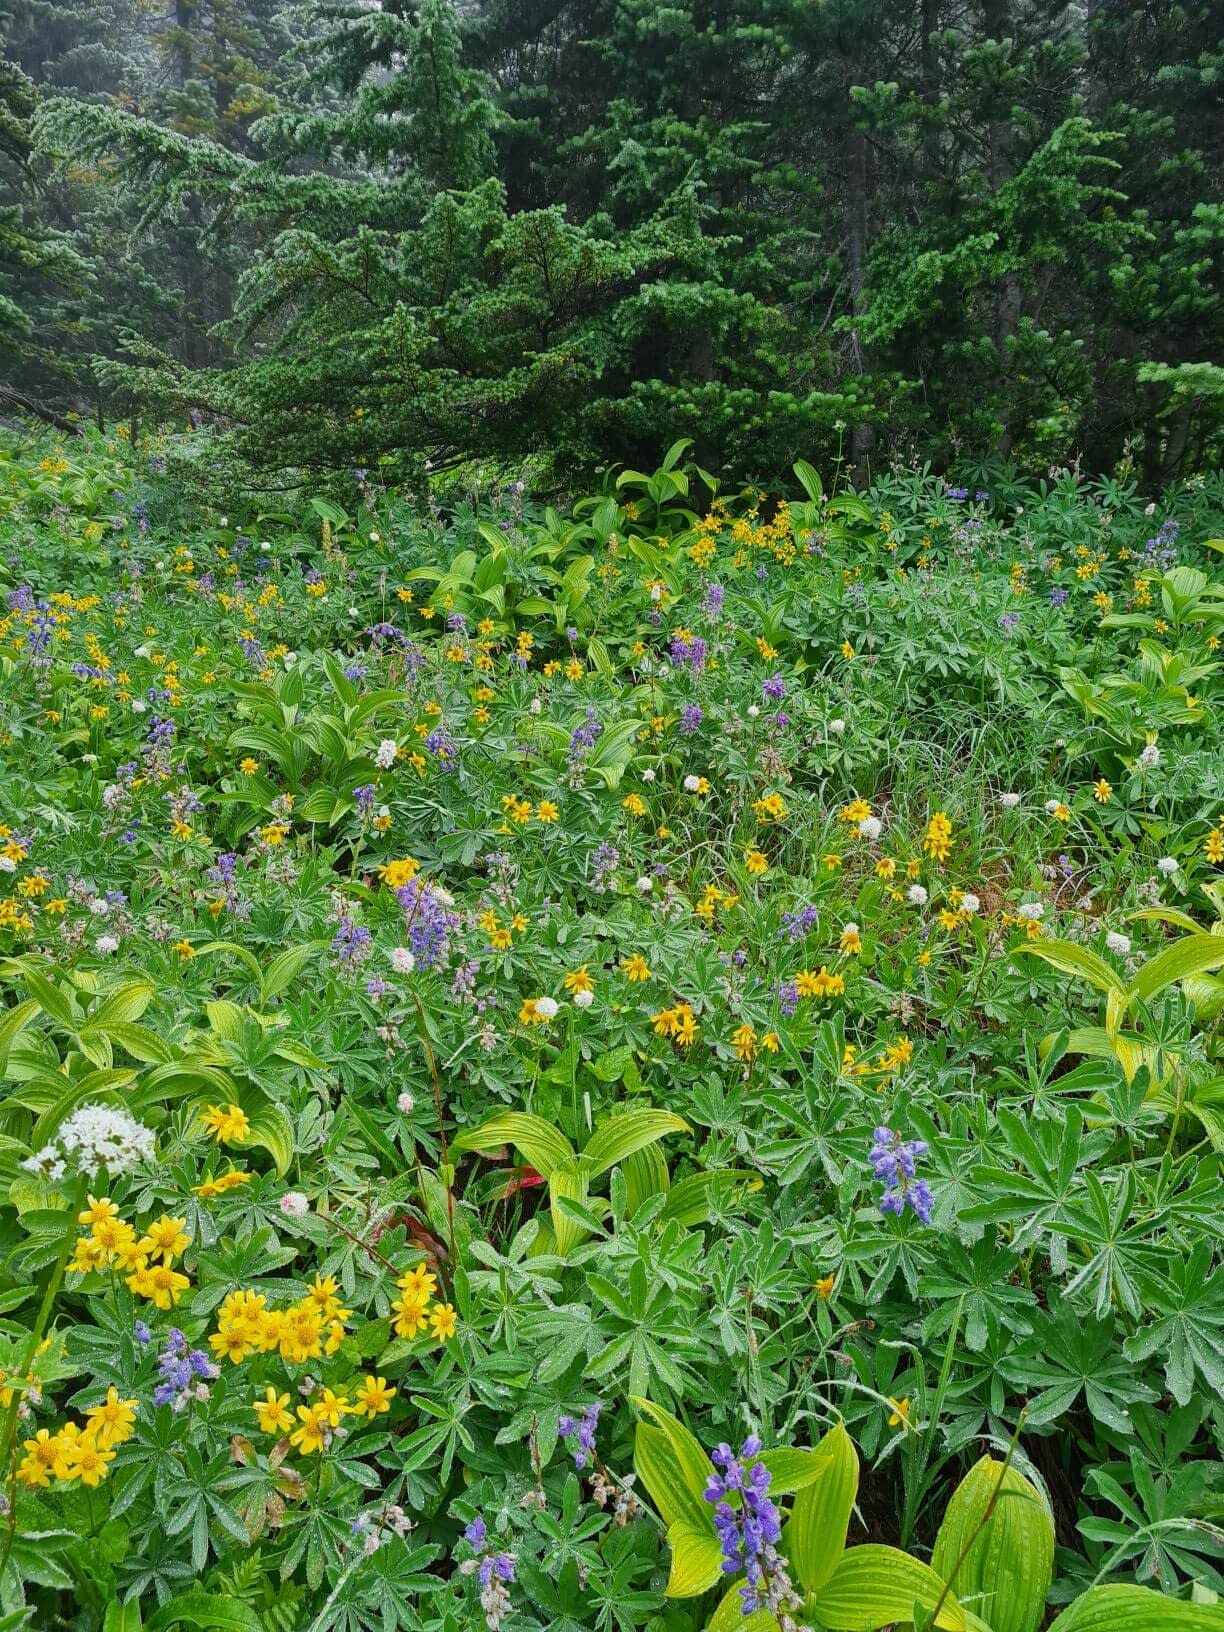 wildflowers in washington state along the Skyline Divide Trail